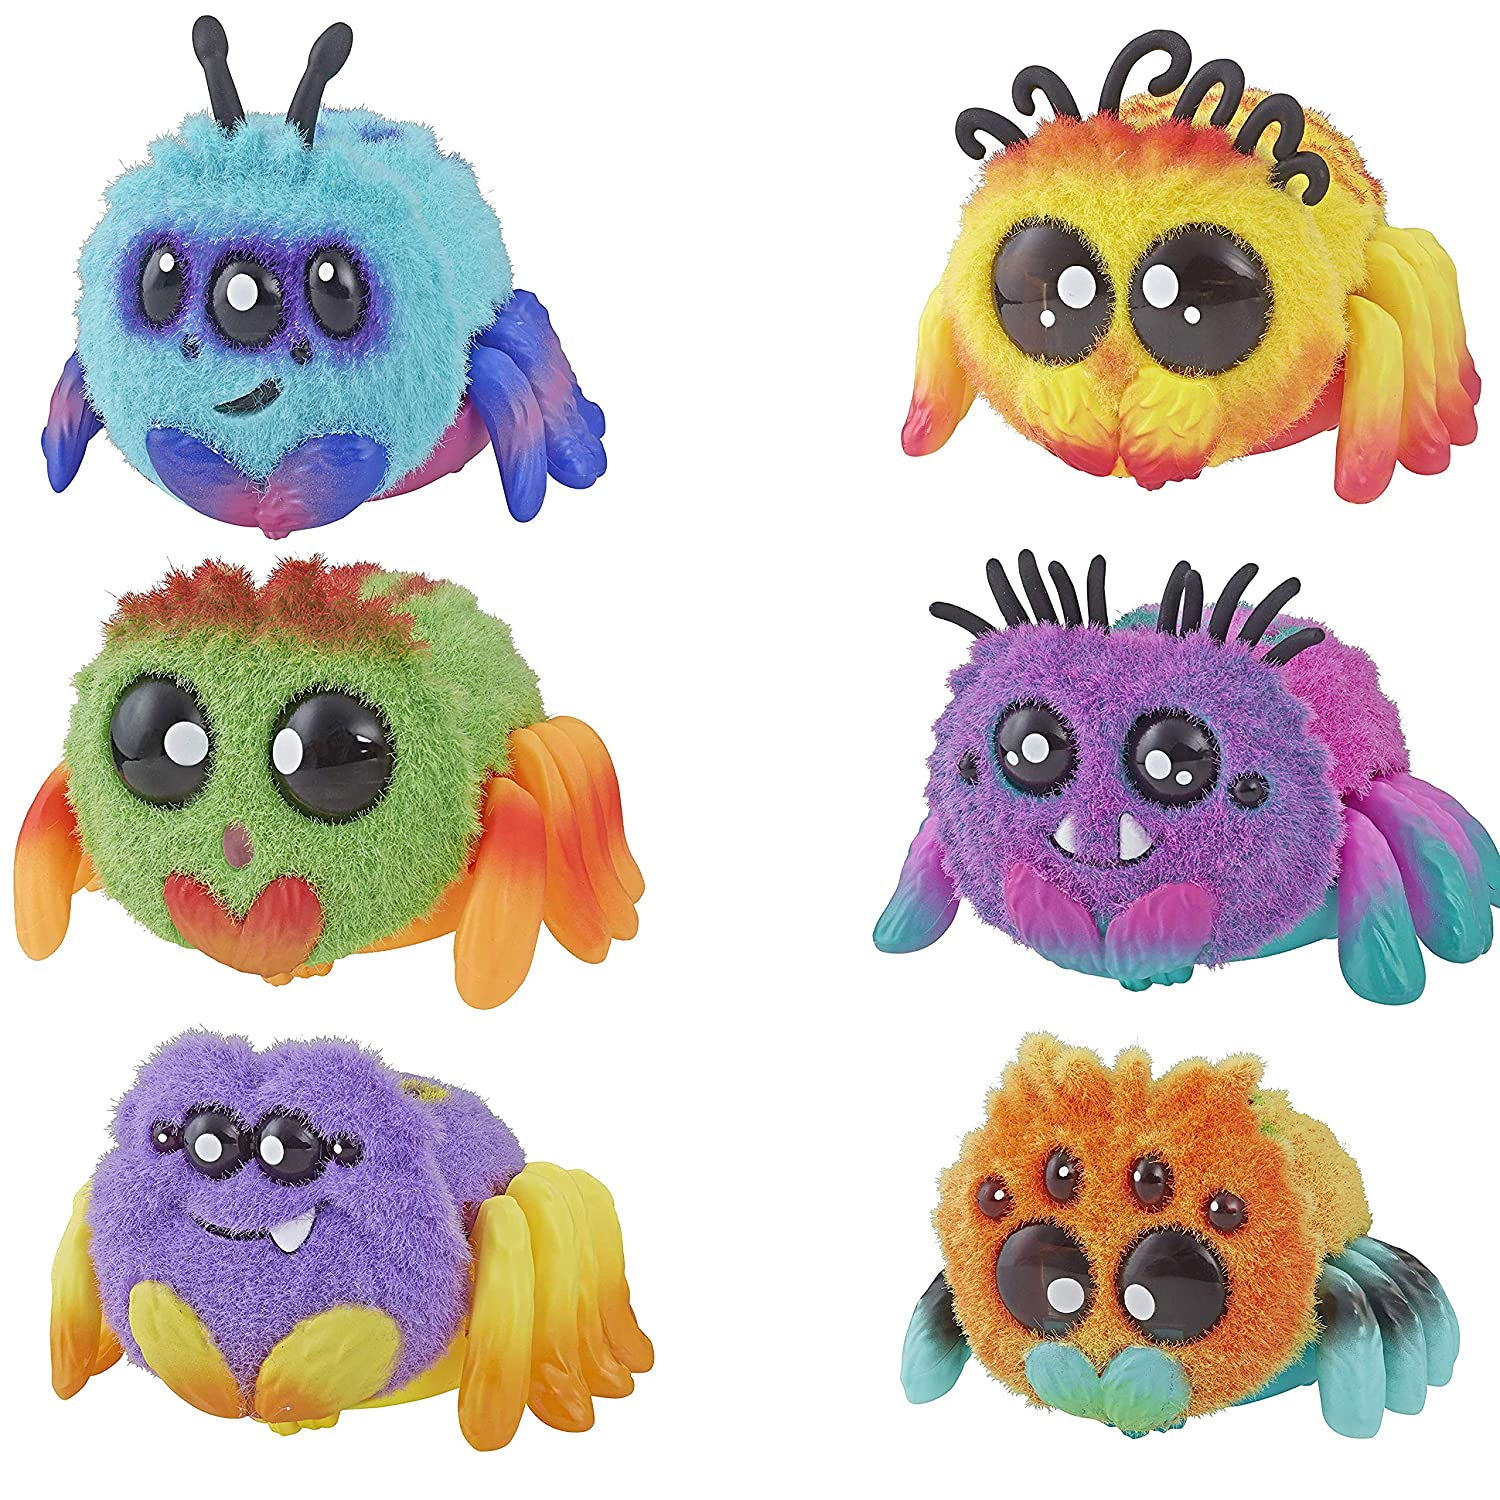 Spider FlufferPuff; Harry Scoots Klutzers Toofy Spooder Bo Dangles and Peeks Voice Activated Pet; Ages 5 and up Set of 6